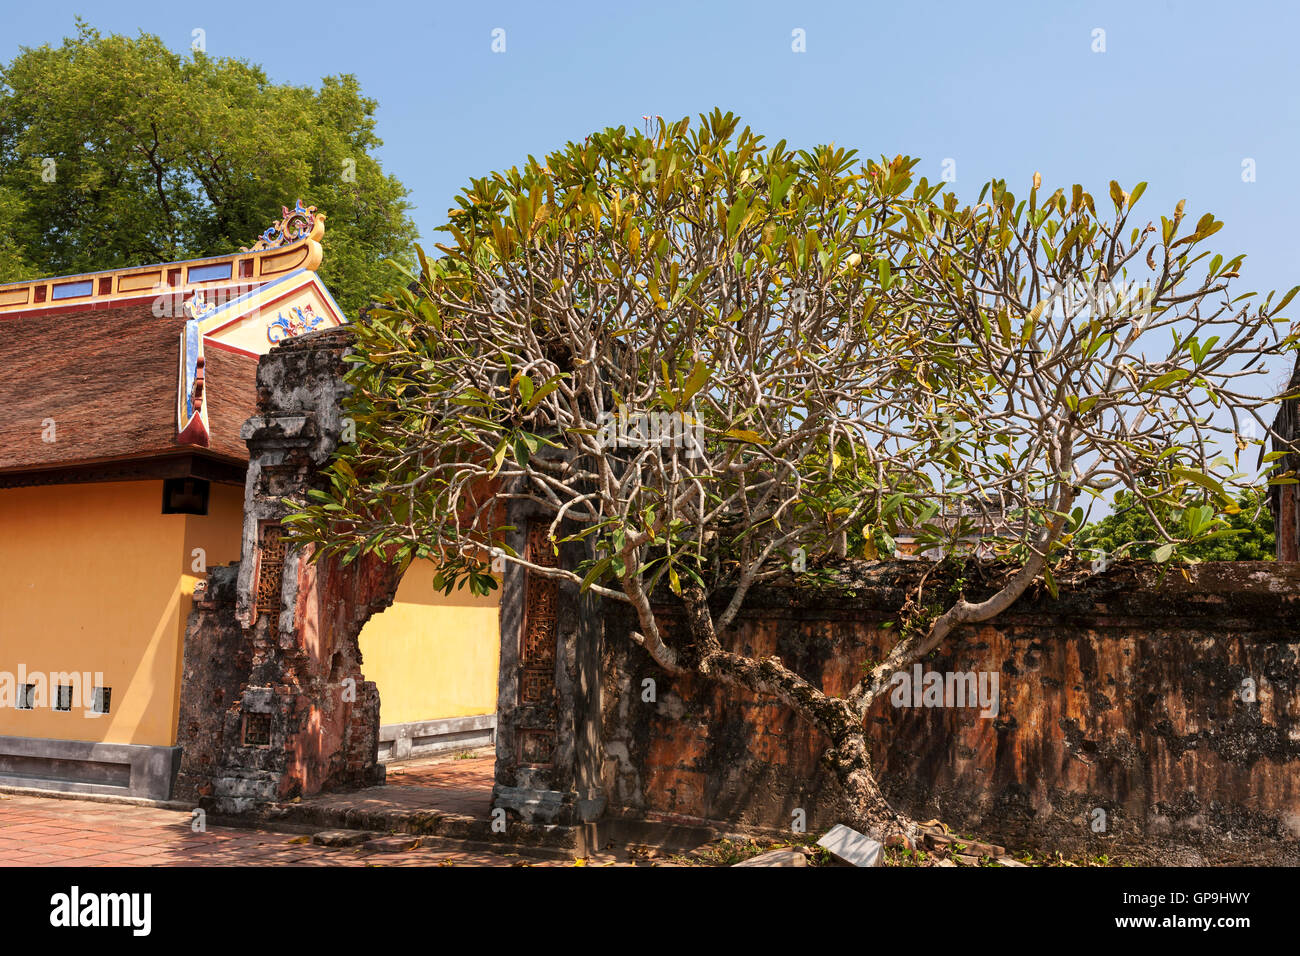 War-damaged archway, approach to Cung Dien Tho Palace, Imperial City, Hue, Viet Nam Stock Photo